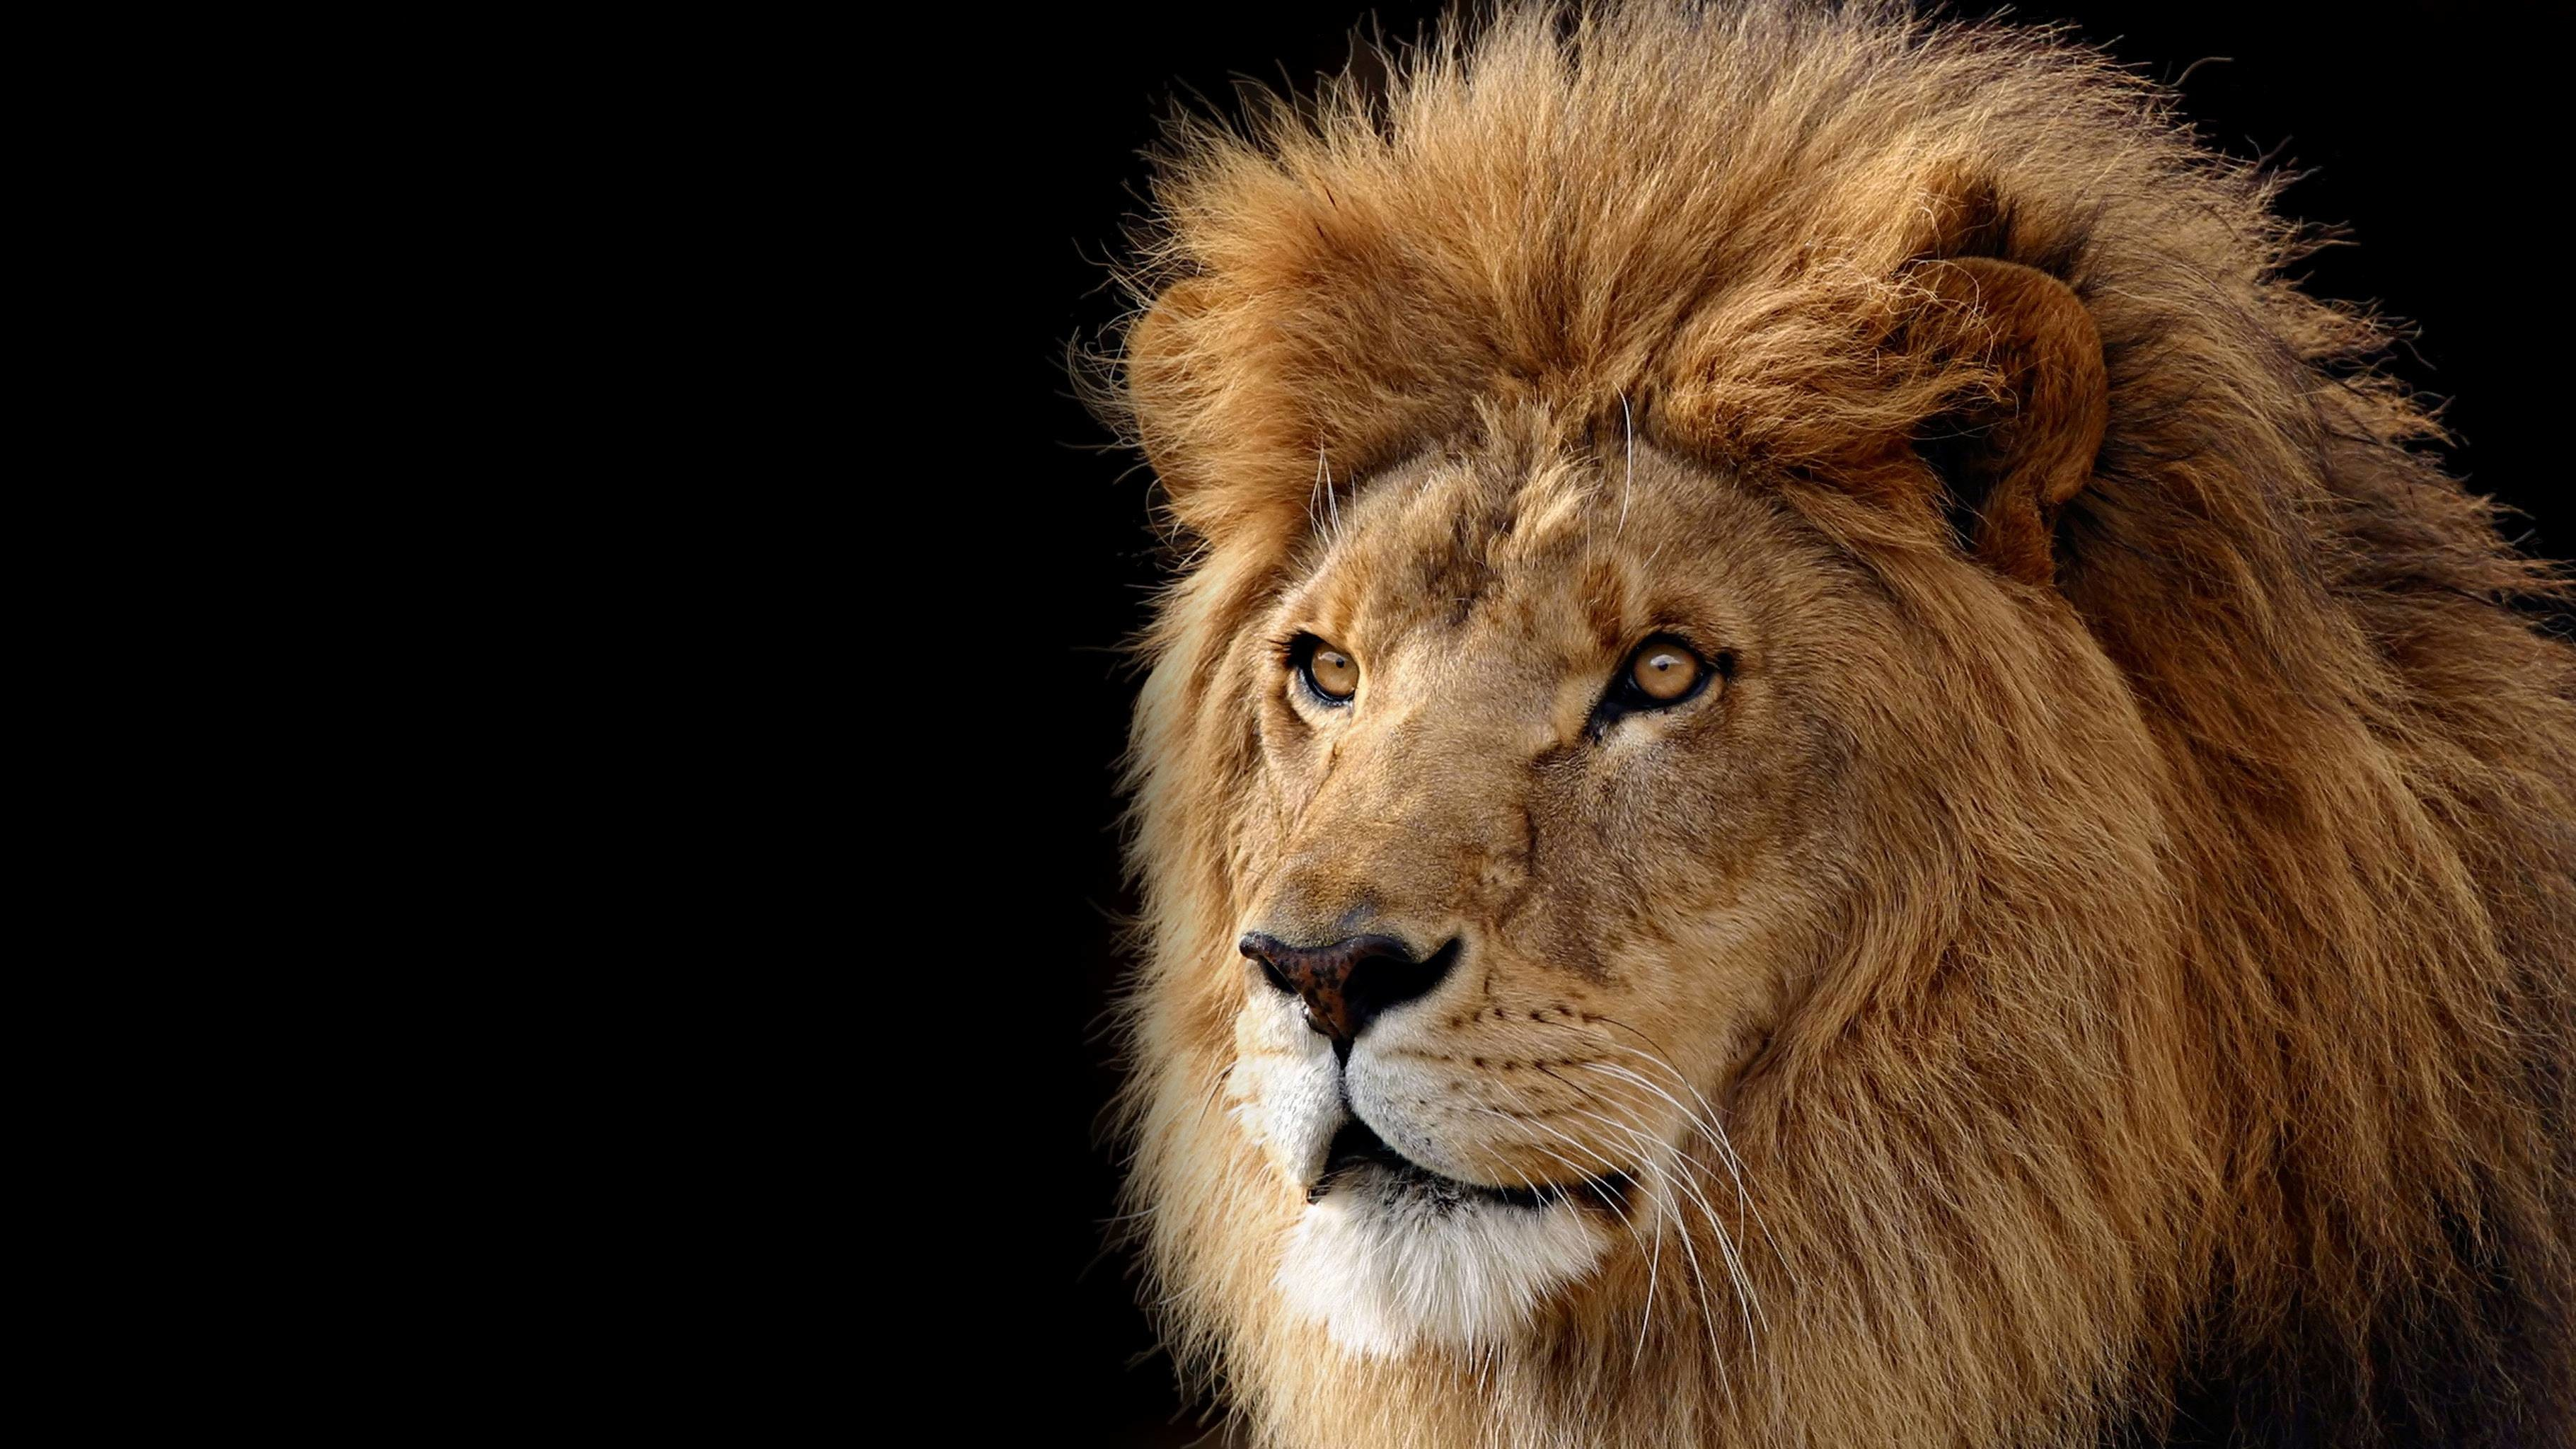 lion hd wallpapers download | HD Wallpapers | Pinterest | Lion wallpaper,  Lions and Wallpaper